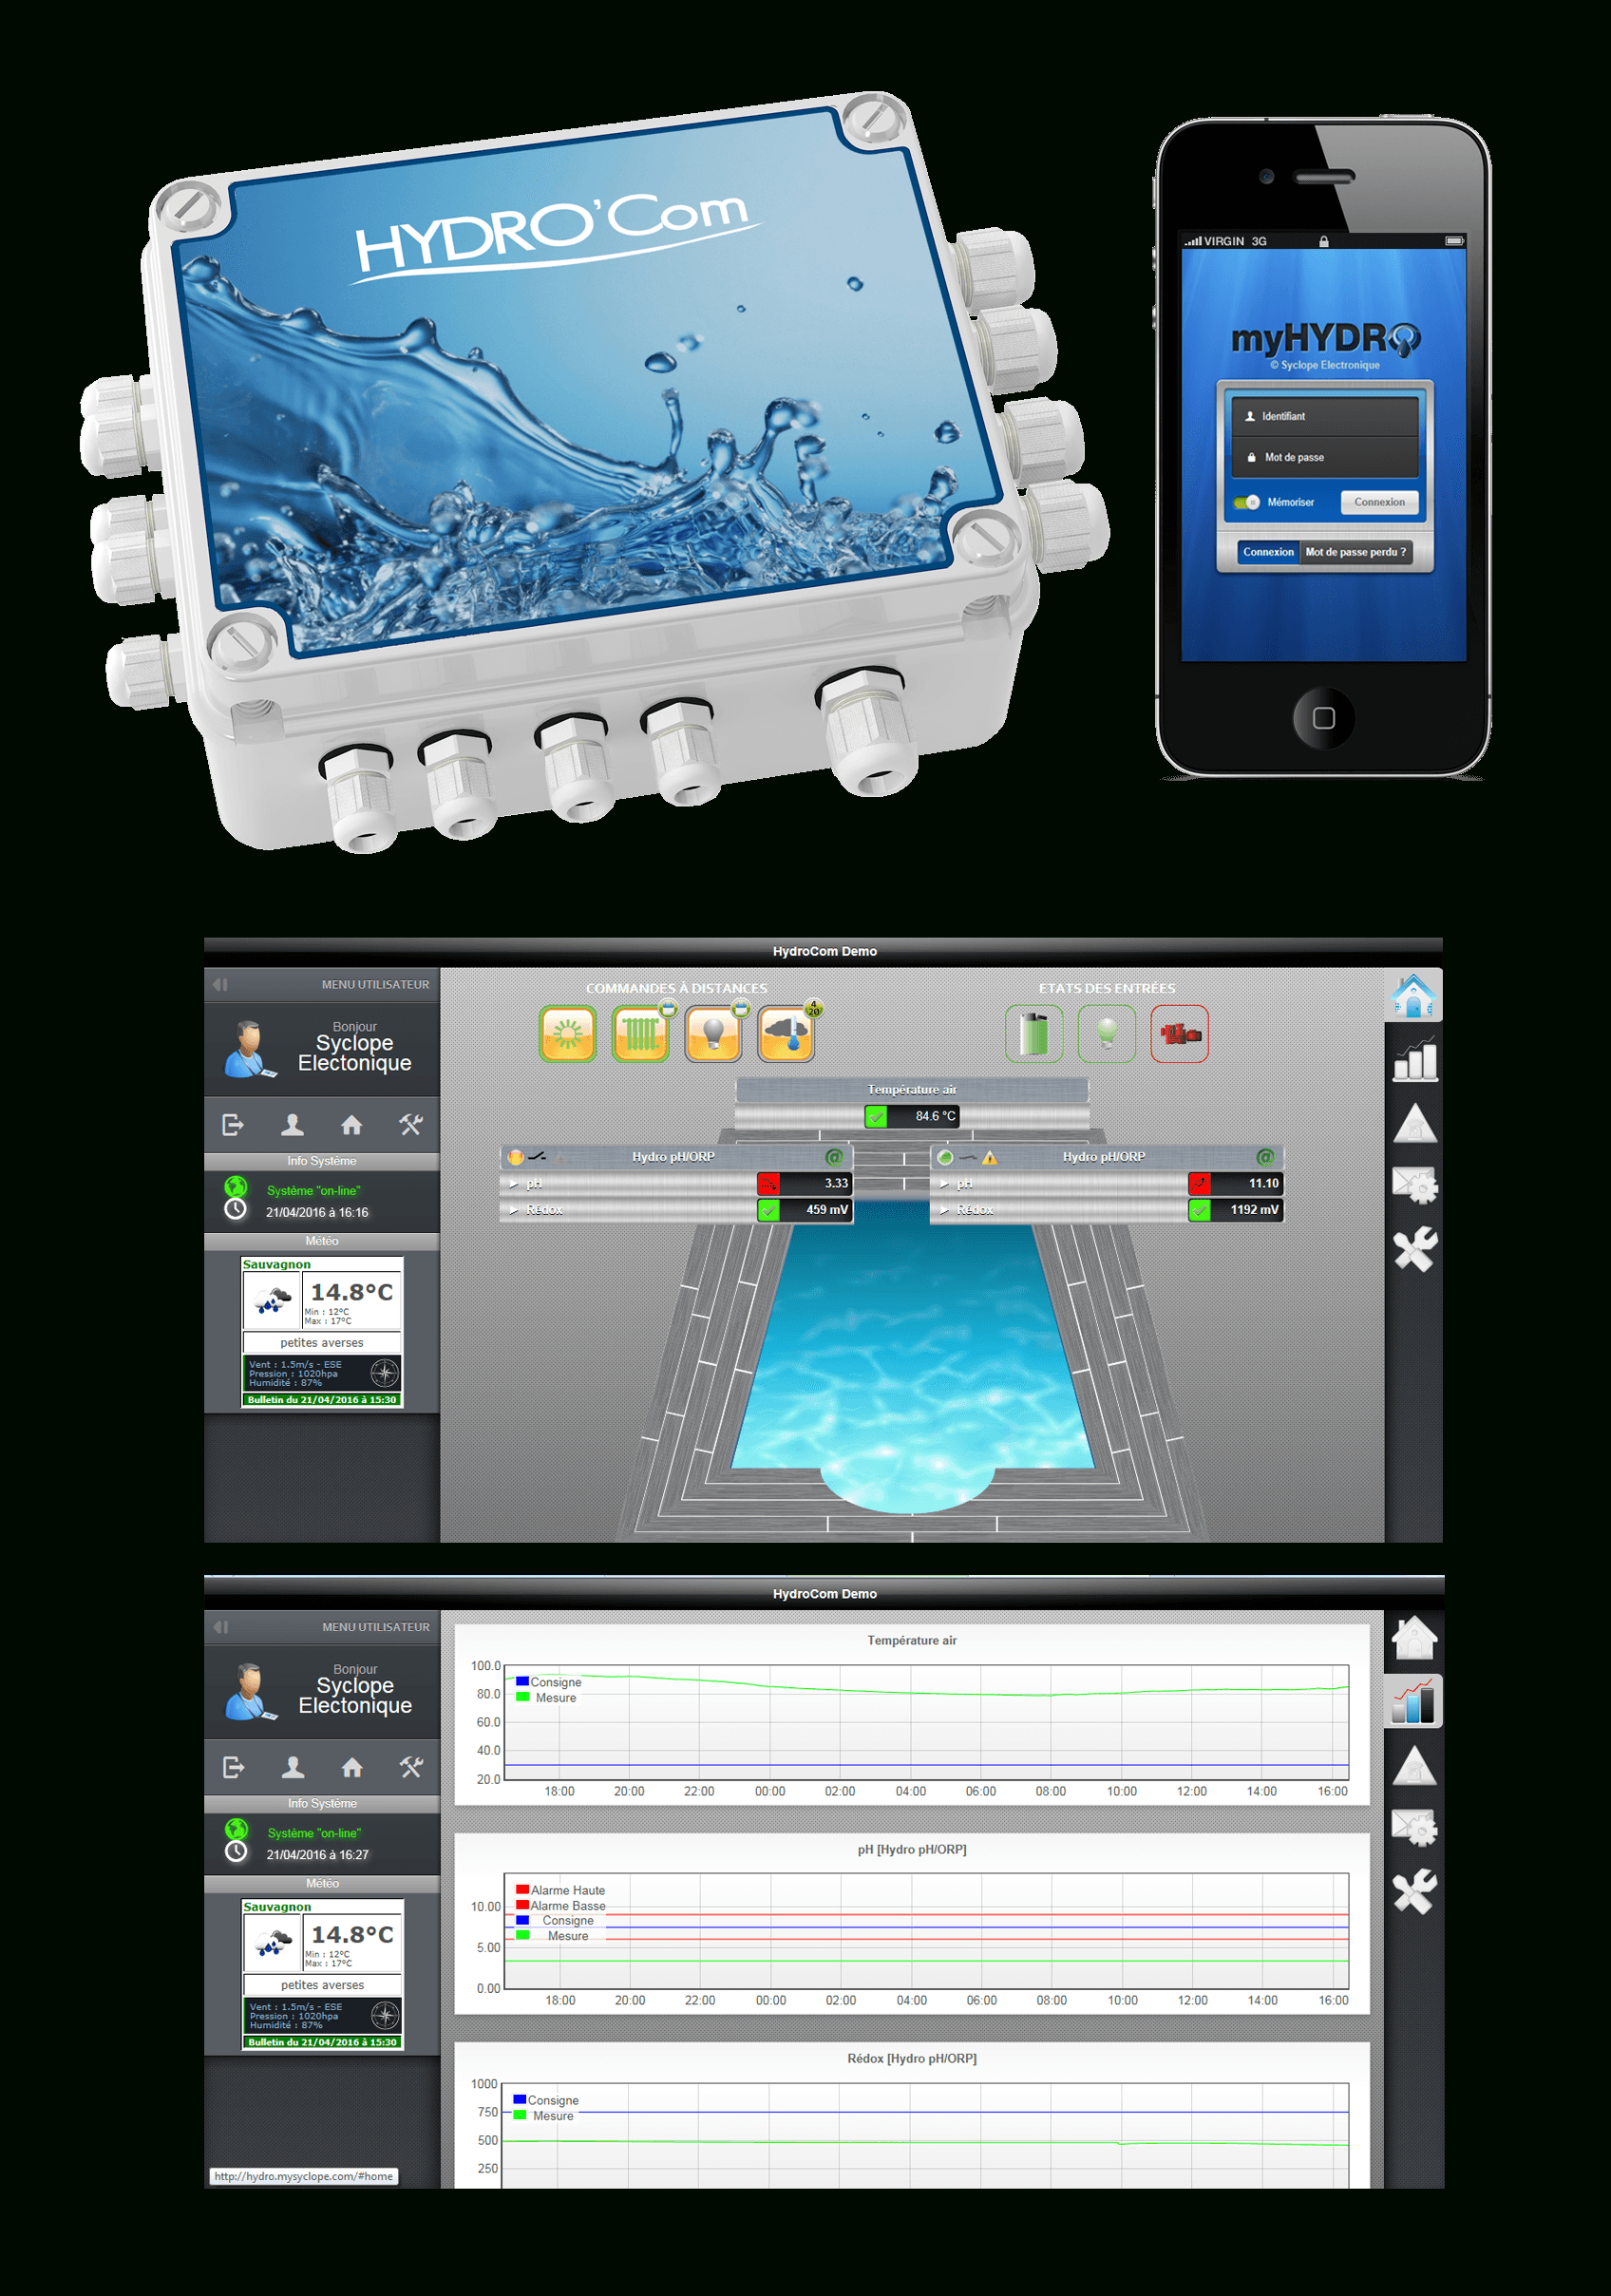 Swimming Pool Connected With The Hydro'Com intérieur Hydro Touch Syclope